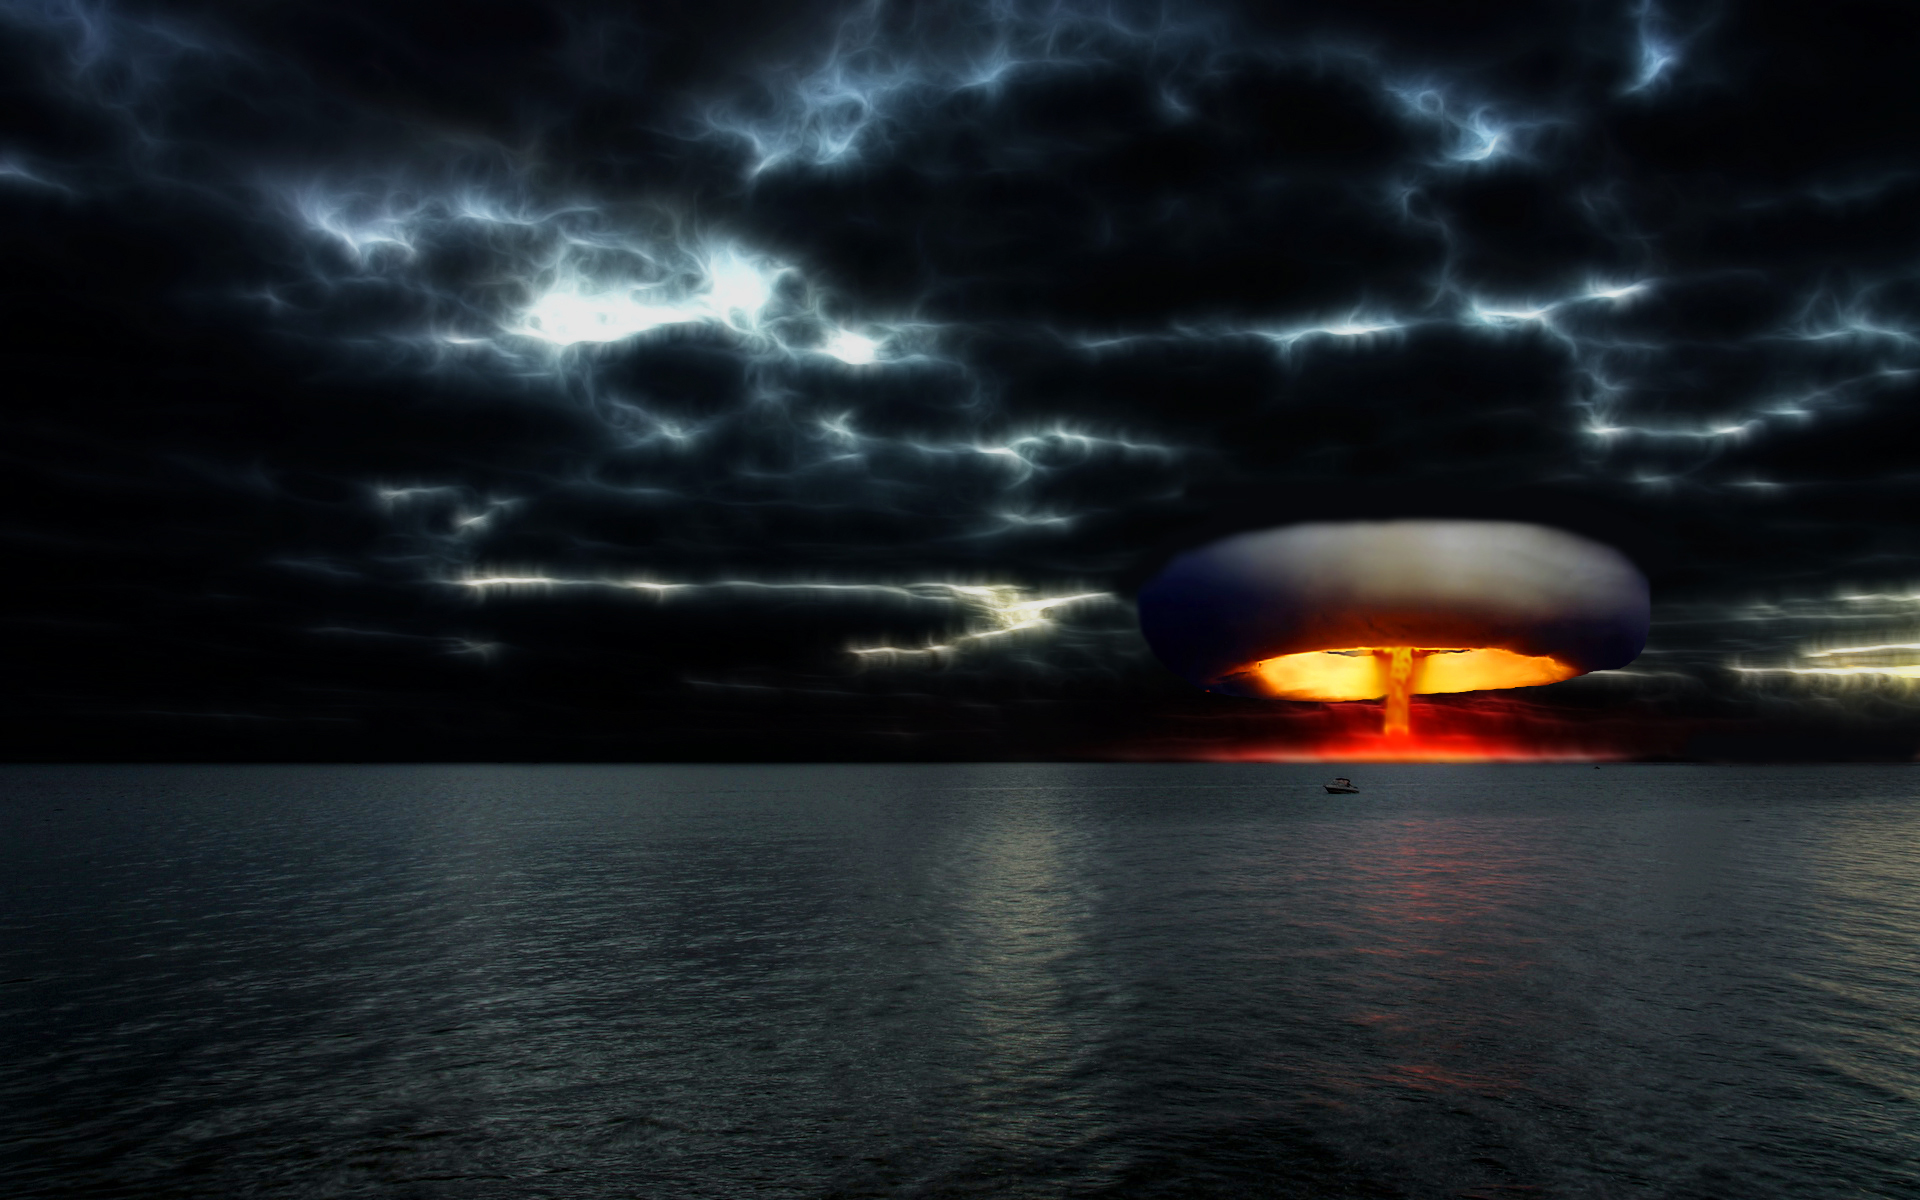 Download Nuclear Explosions Wallpaper 1920x1200 1920x1200